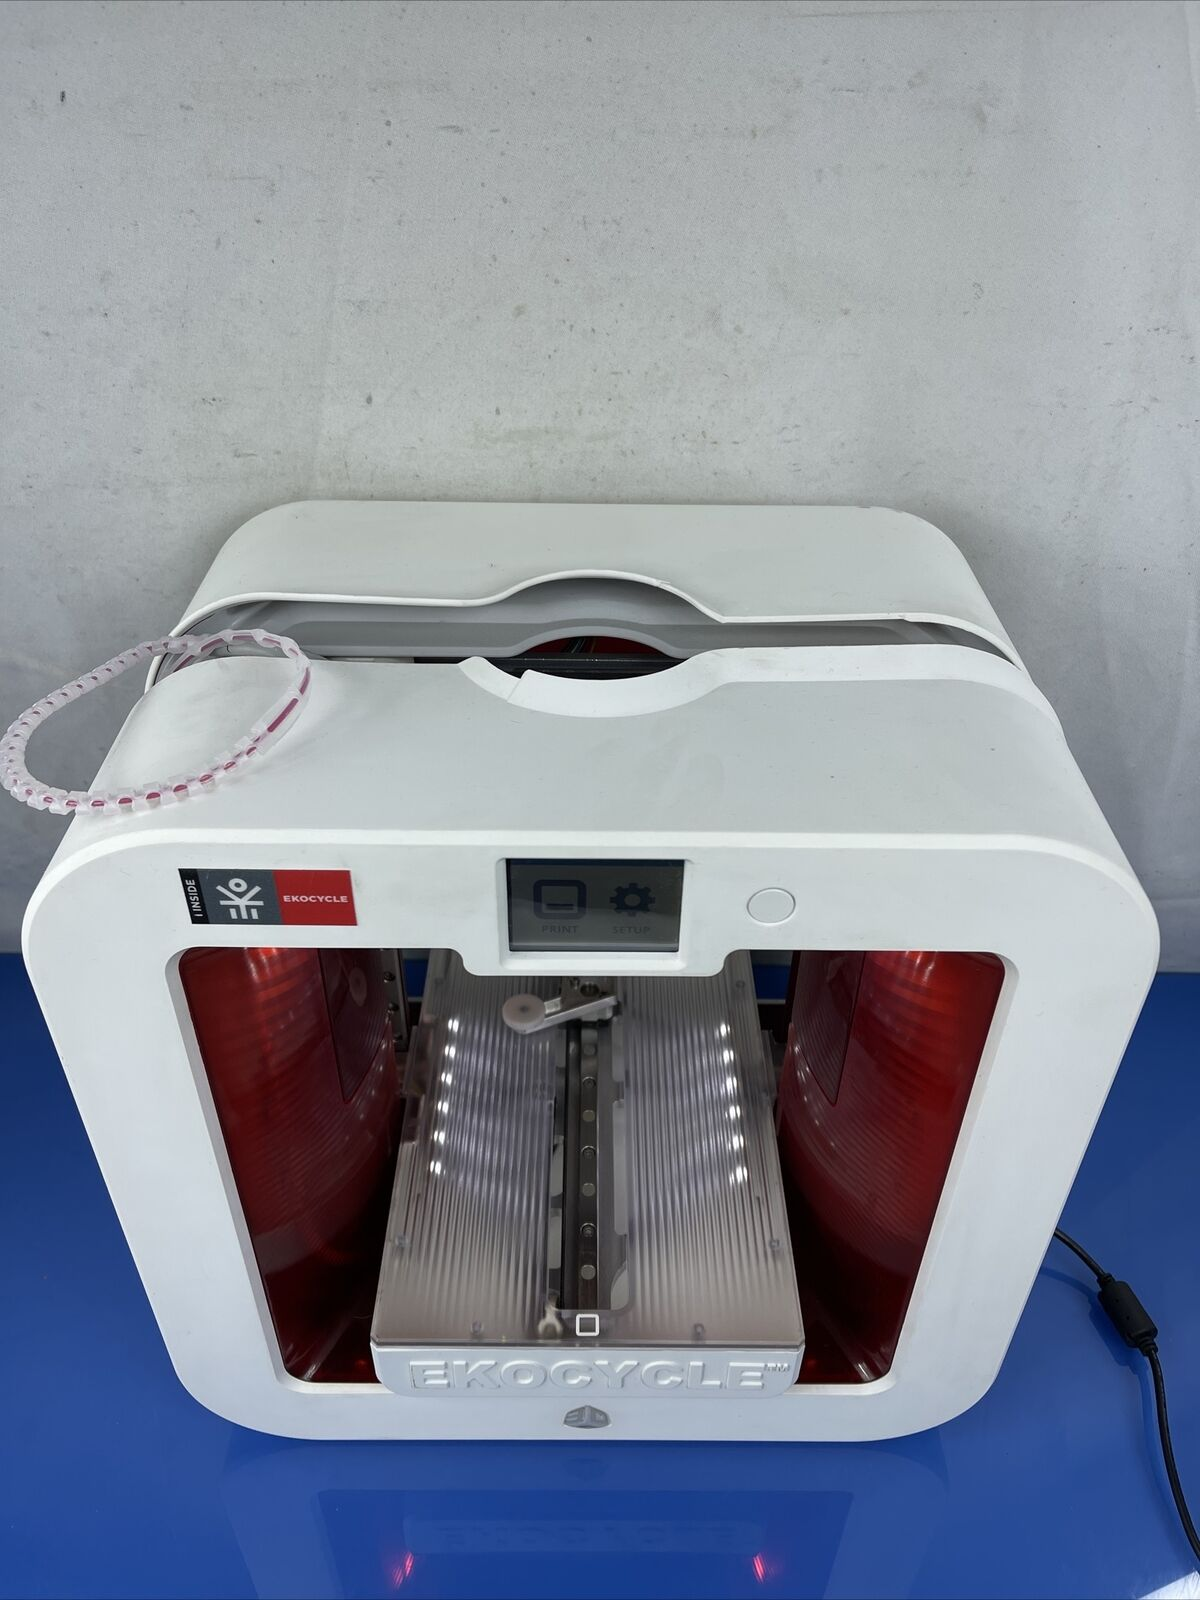 The EKOCYCLE Cube Personal 3D Printer Recycle & Remake